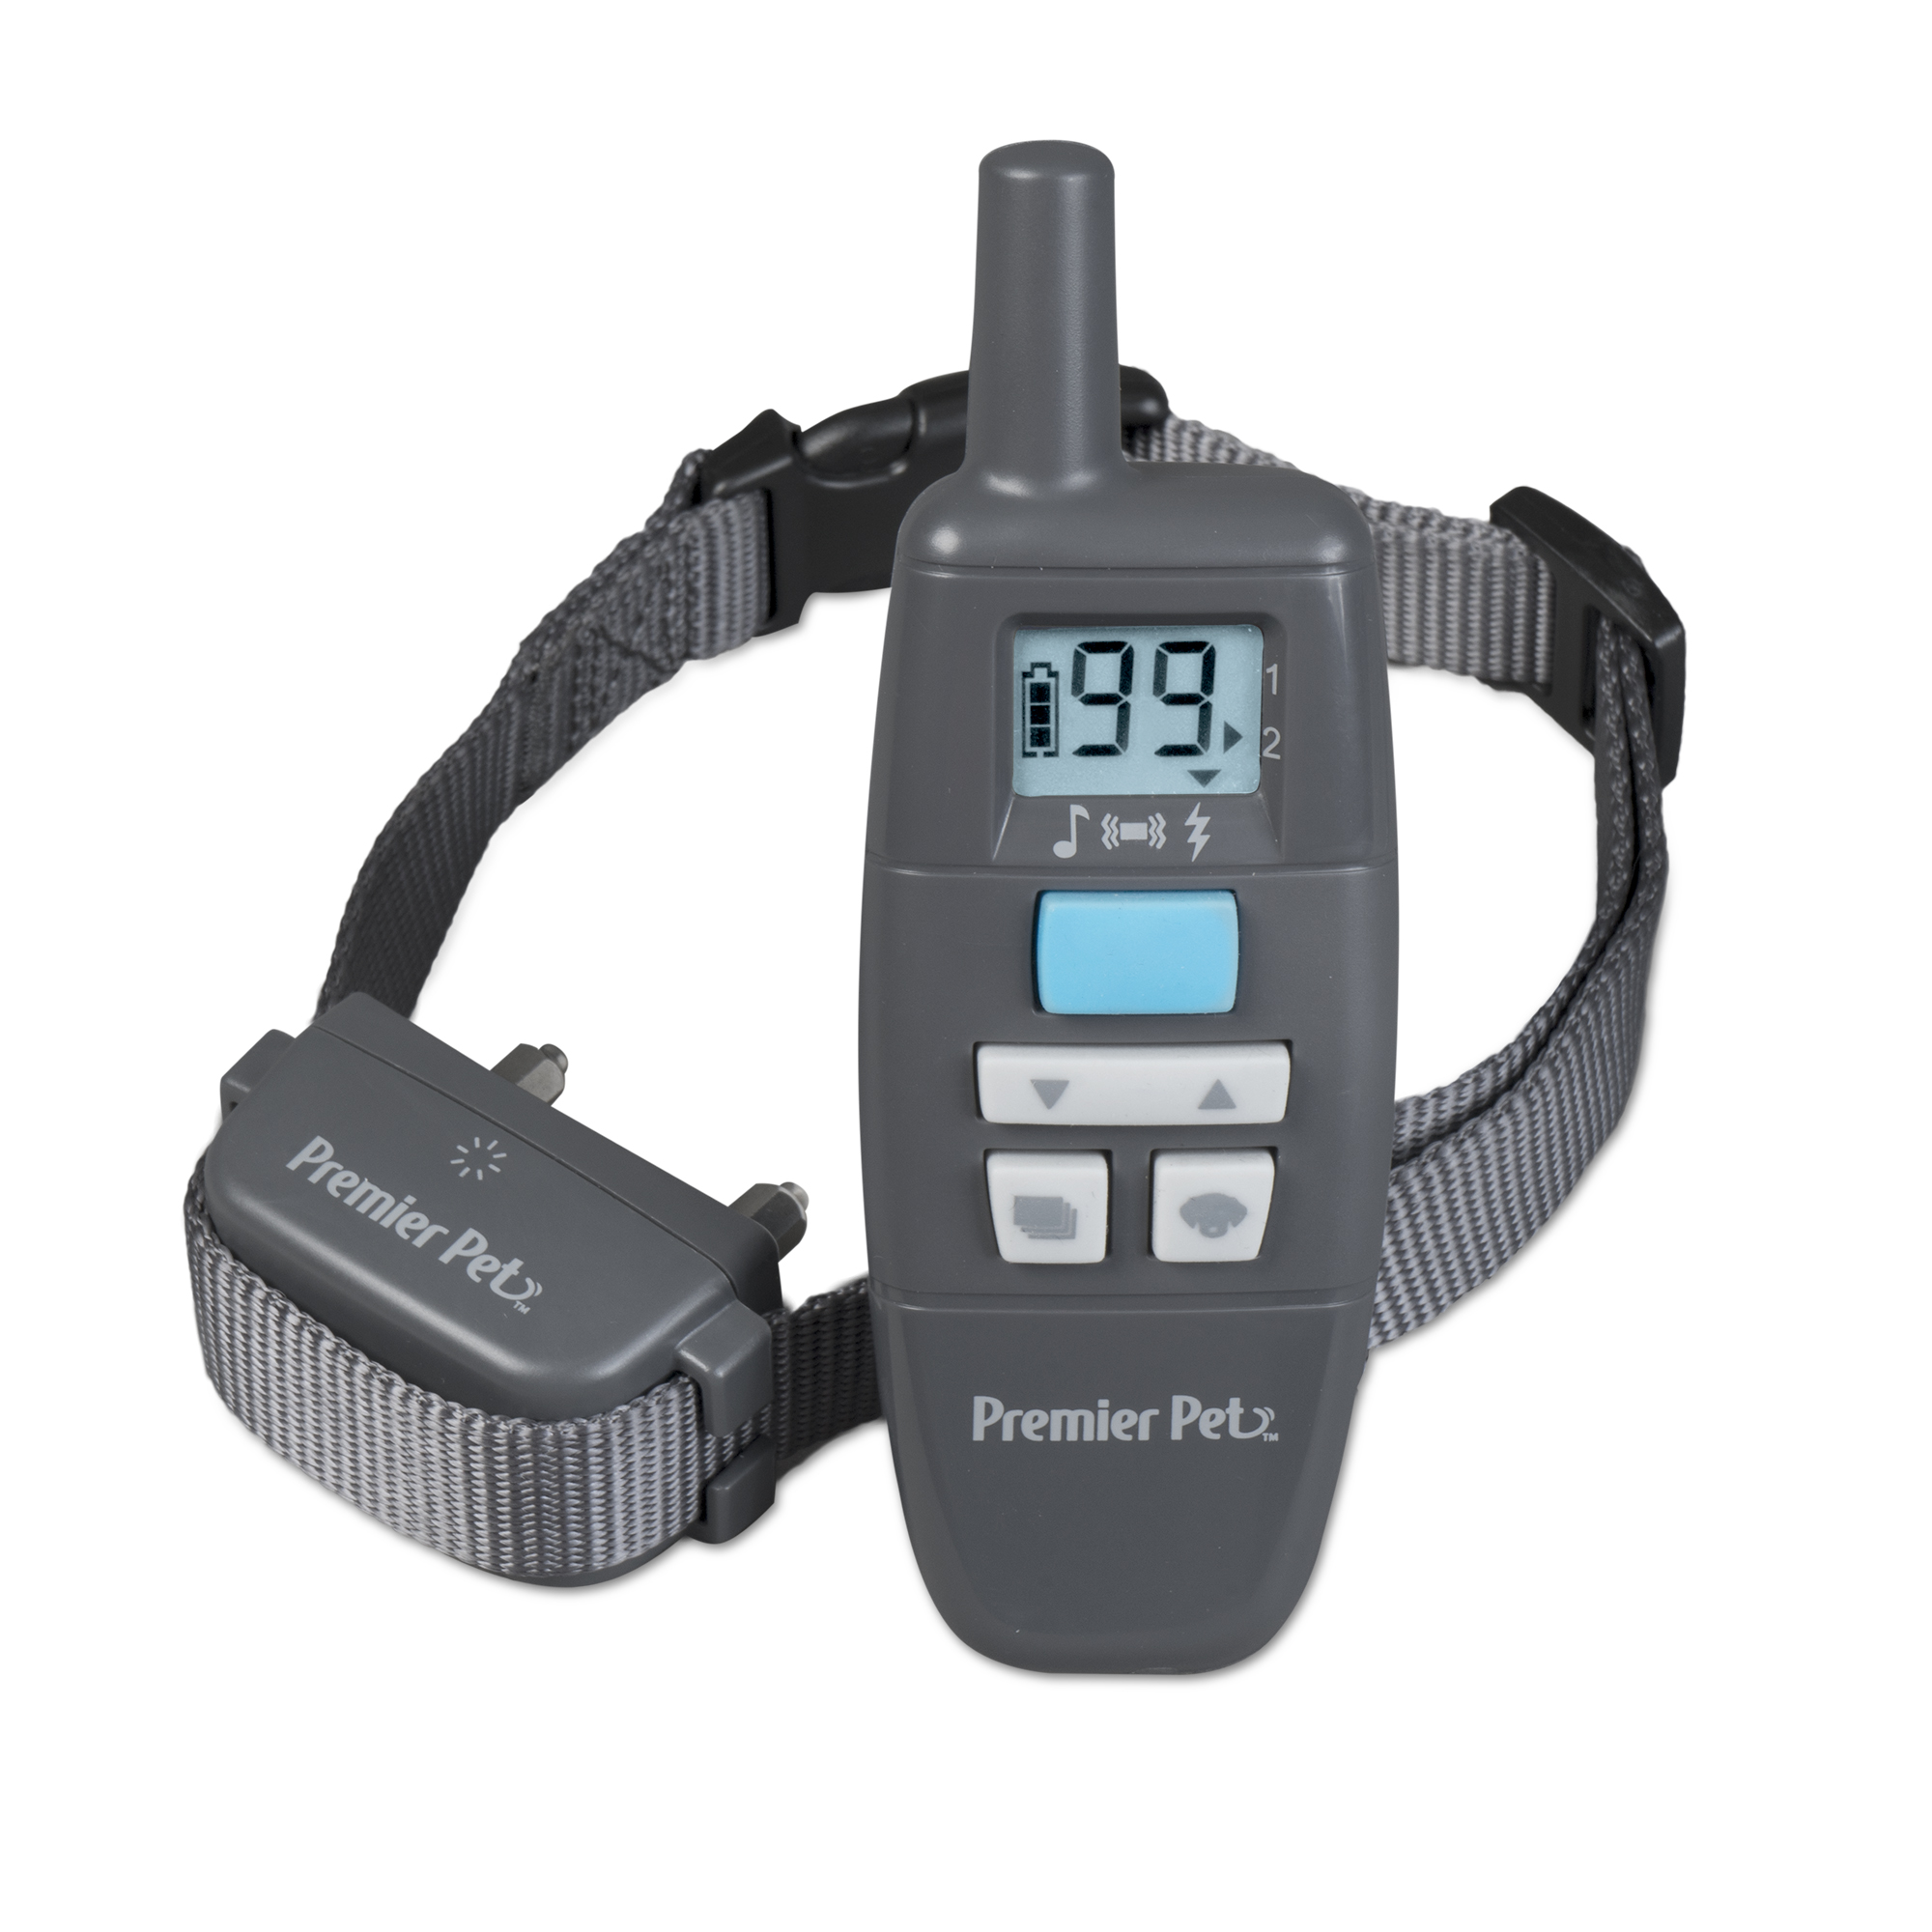 Premier Pet 300 Yard Remote Trainer with Tone/Beep, Vibration and 99 Levels of Static - Rechargeable, Easy-to-Use Pet Training System - Waterproof, Adjustable Collar Fits Small, Medium and Large Dogs